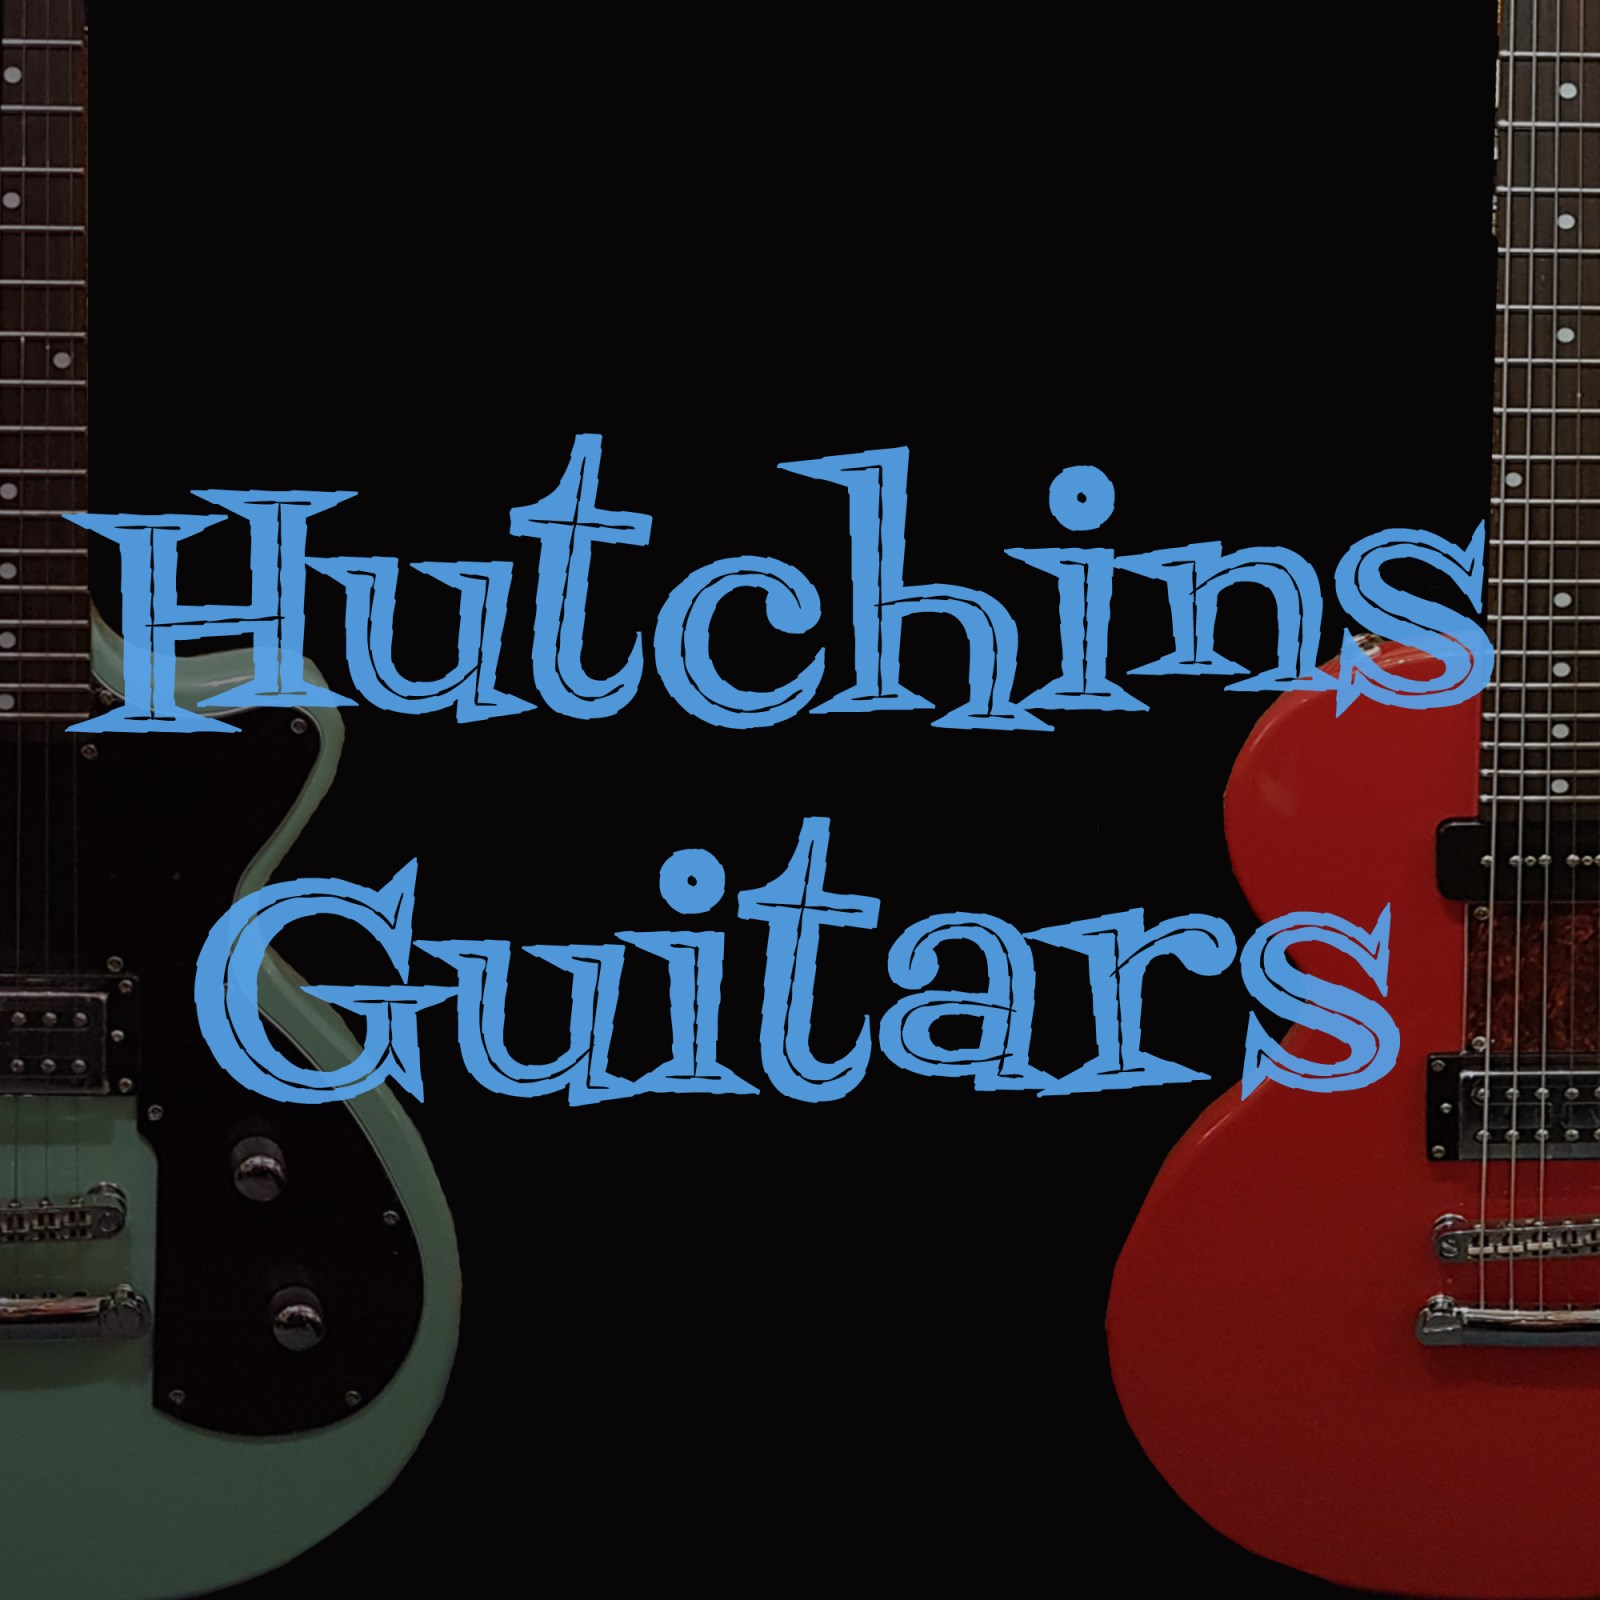 Hutchins Guitars